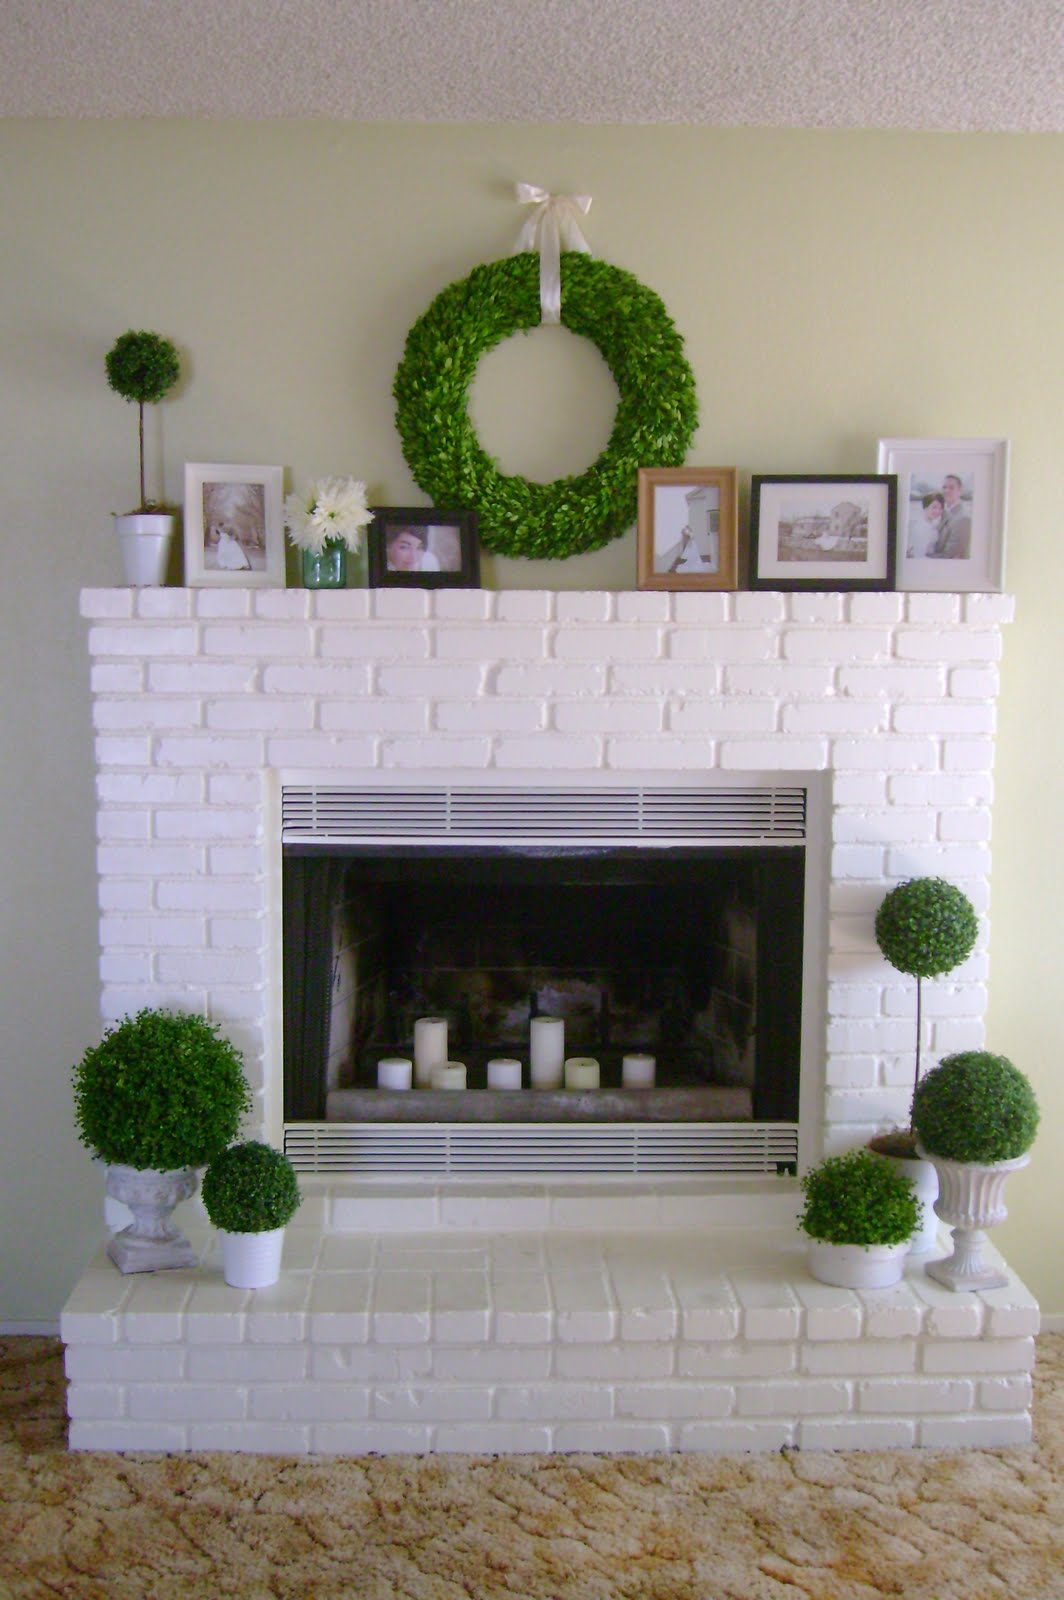 Transform an outdated fireplace into a room focal point with paint and hard work. Here are 10 Fireplace Before and After projects for inspiration!